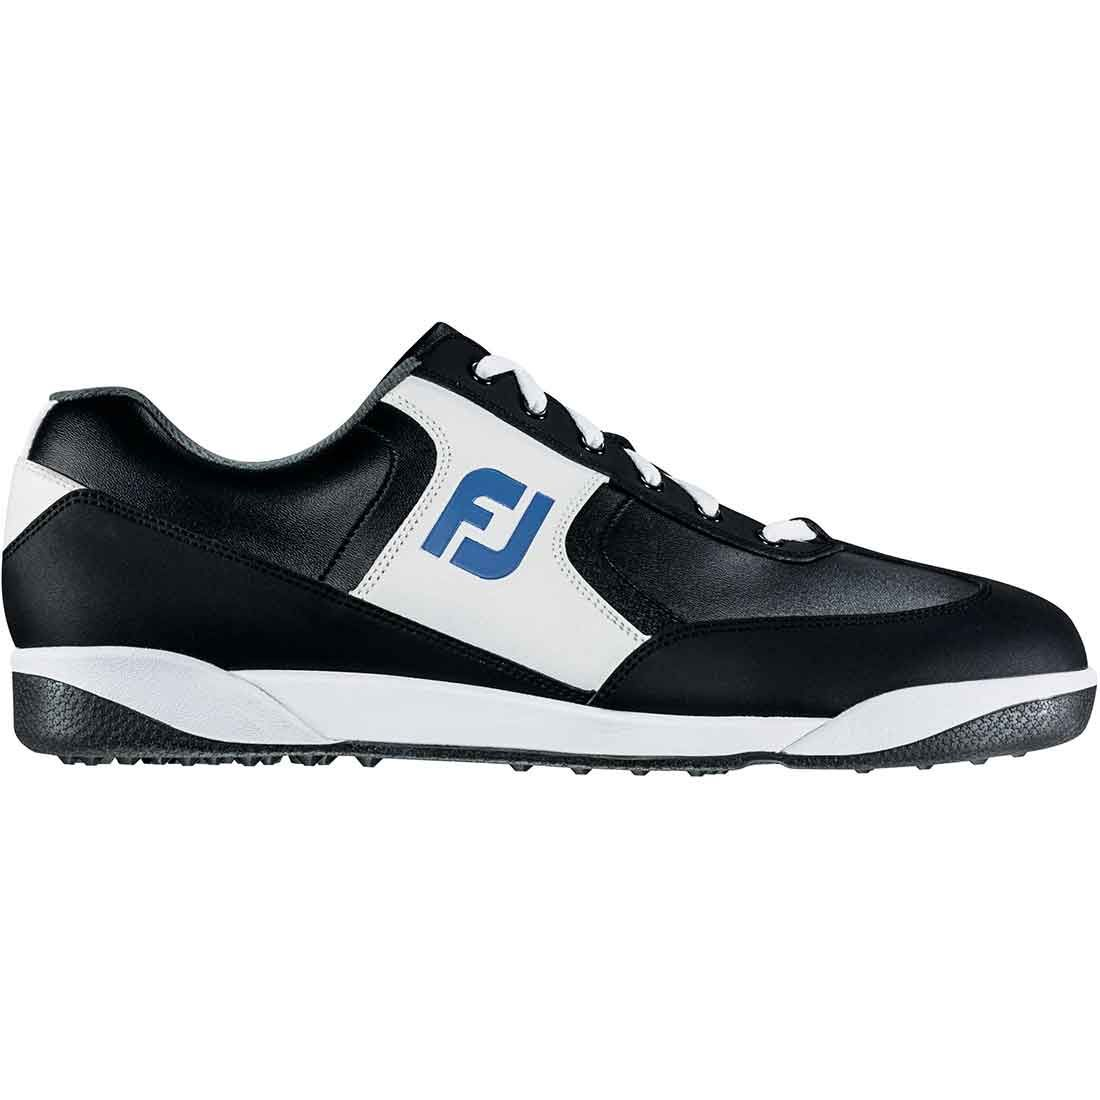 Buy Footjoy Greenjoys Spikeless Golf Shoes White Black Golf Discount